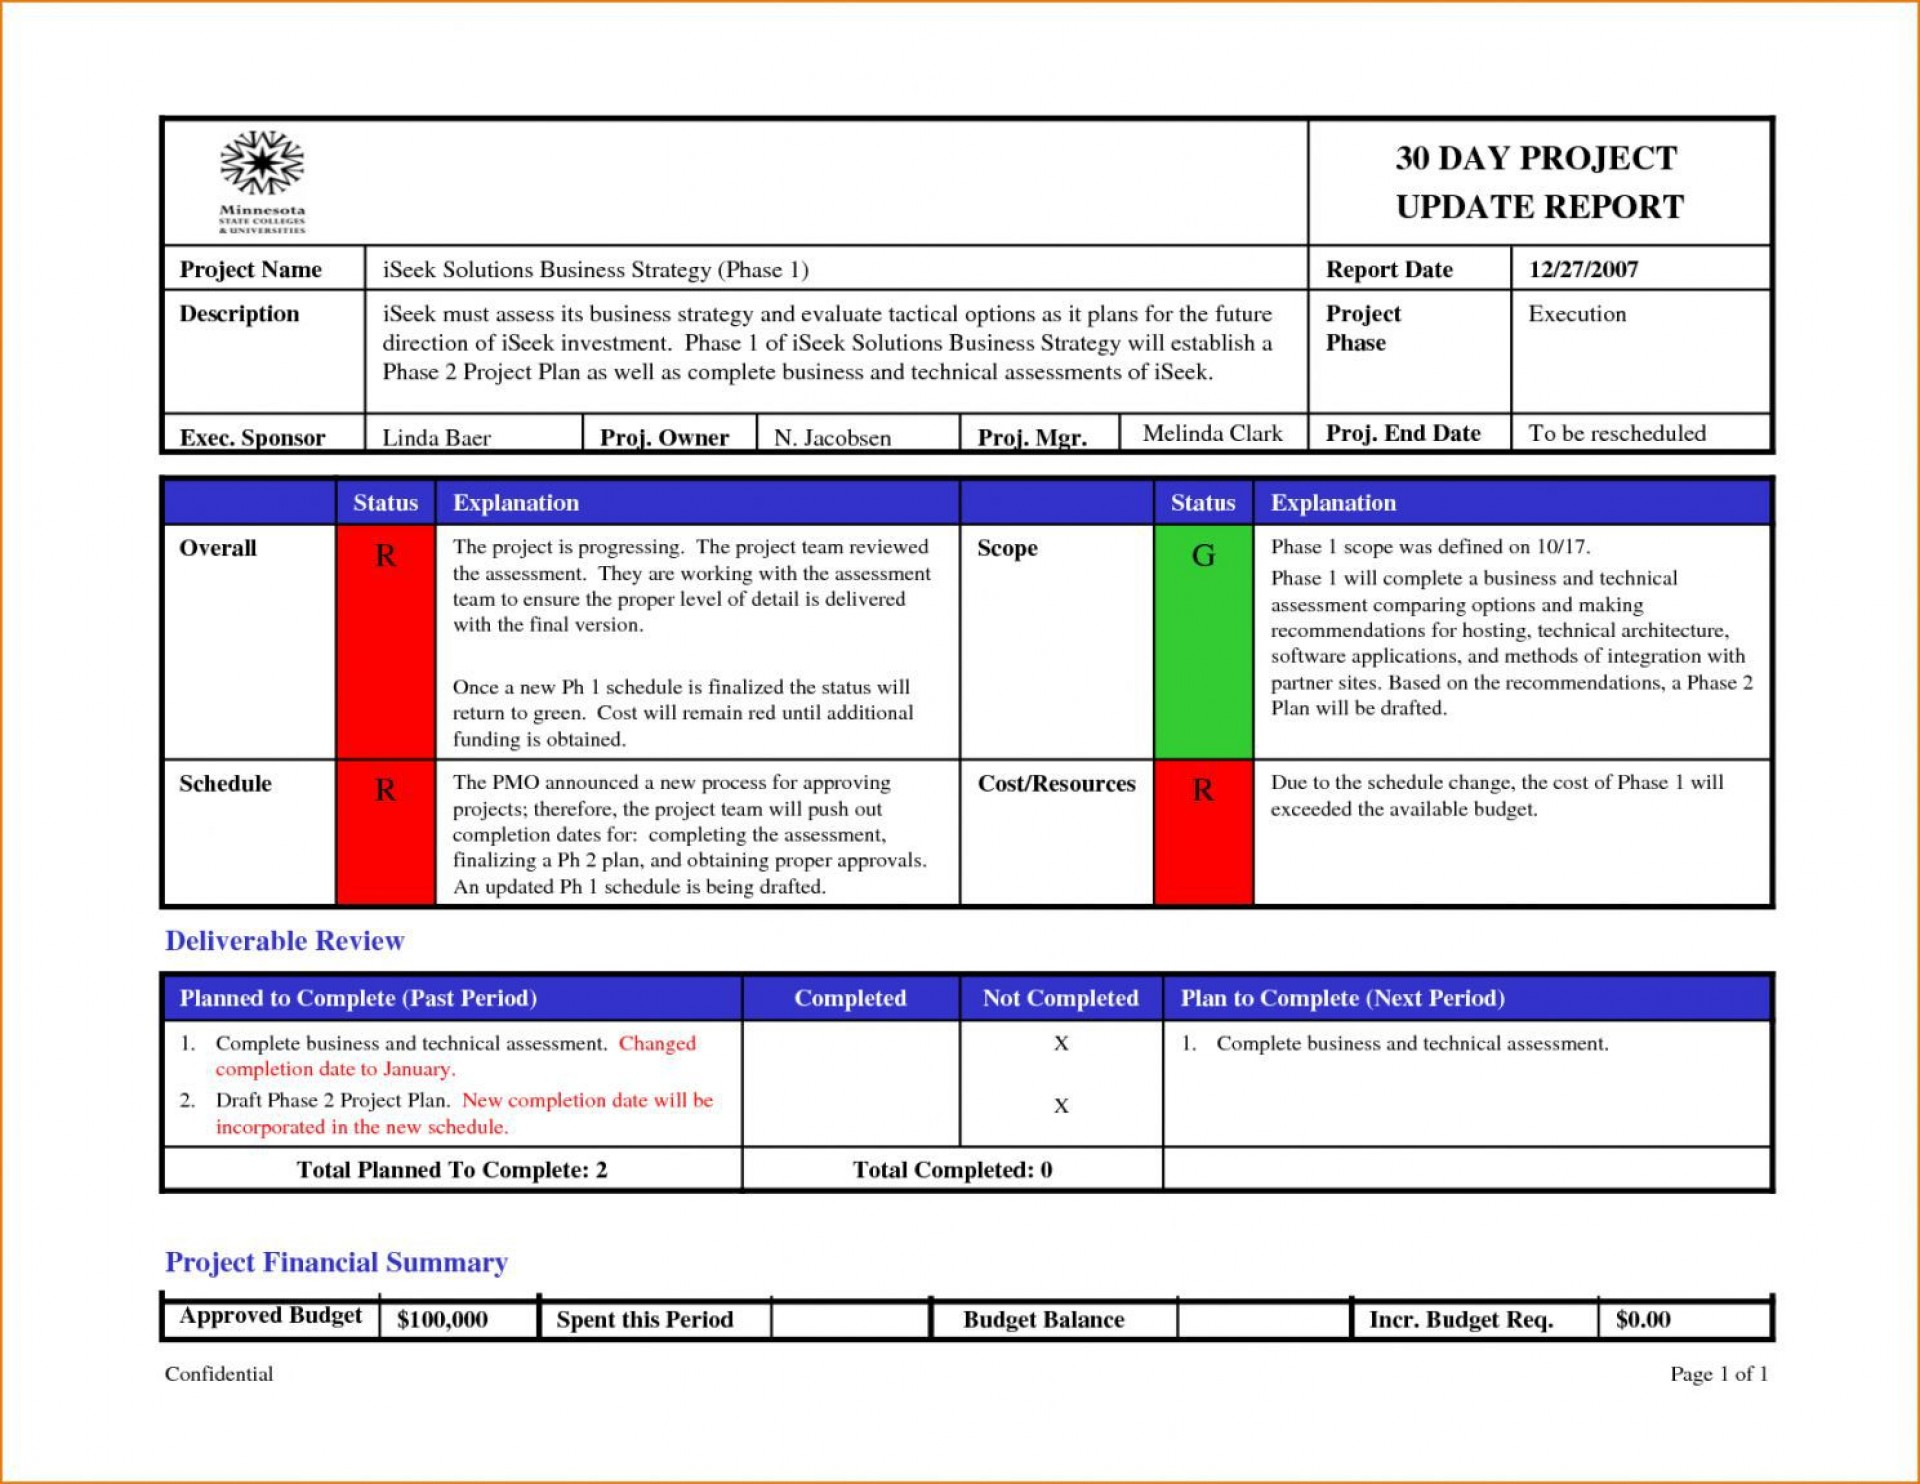 002 Wonderful Project Management Progres Report Template Picture  Statu Ppt Weekly1920